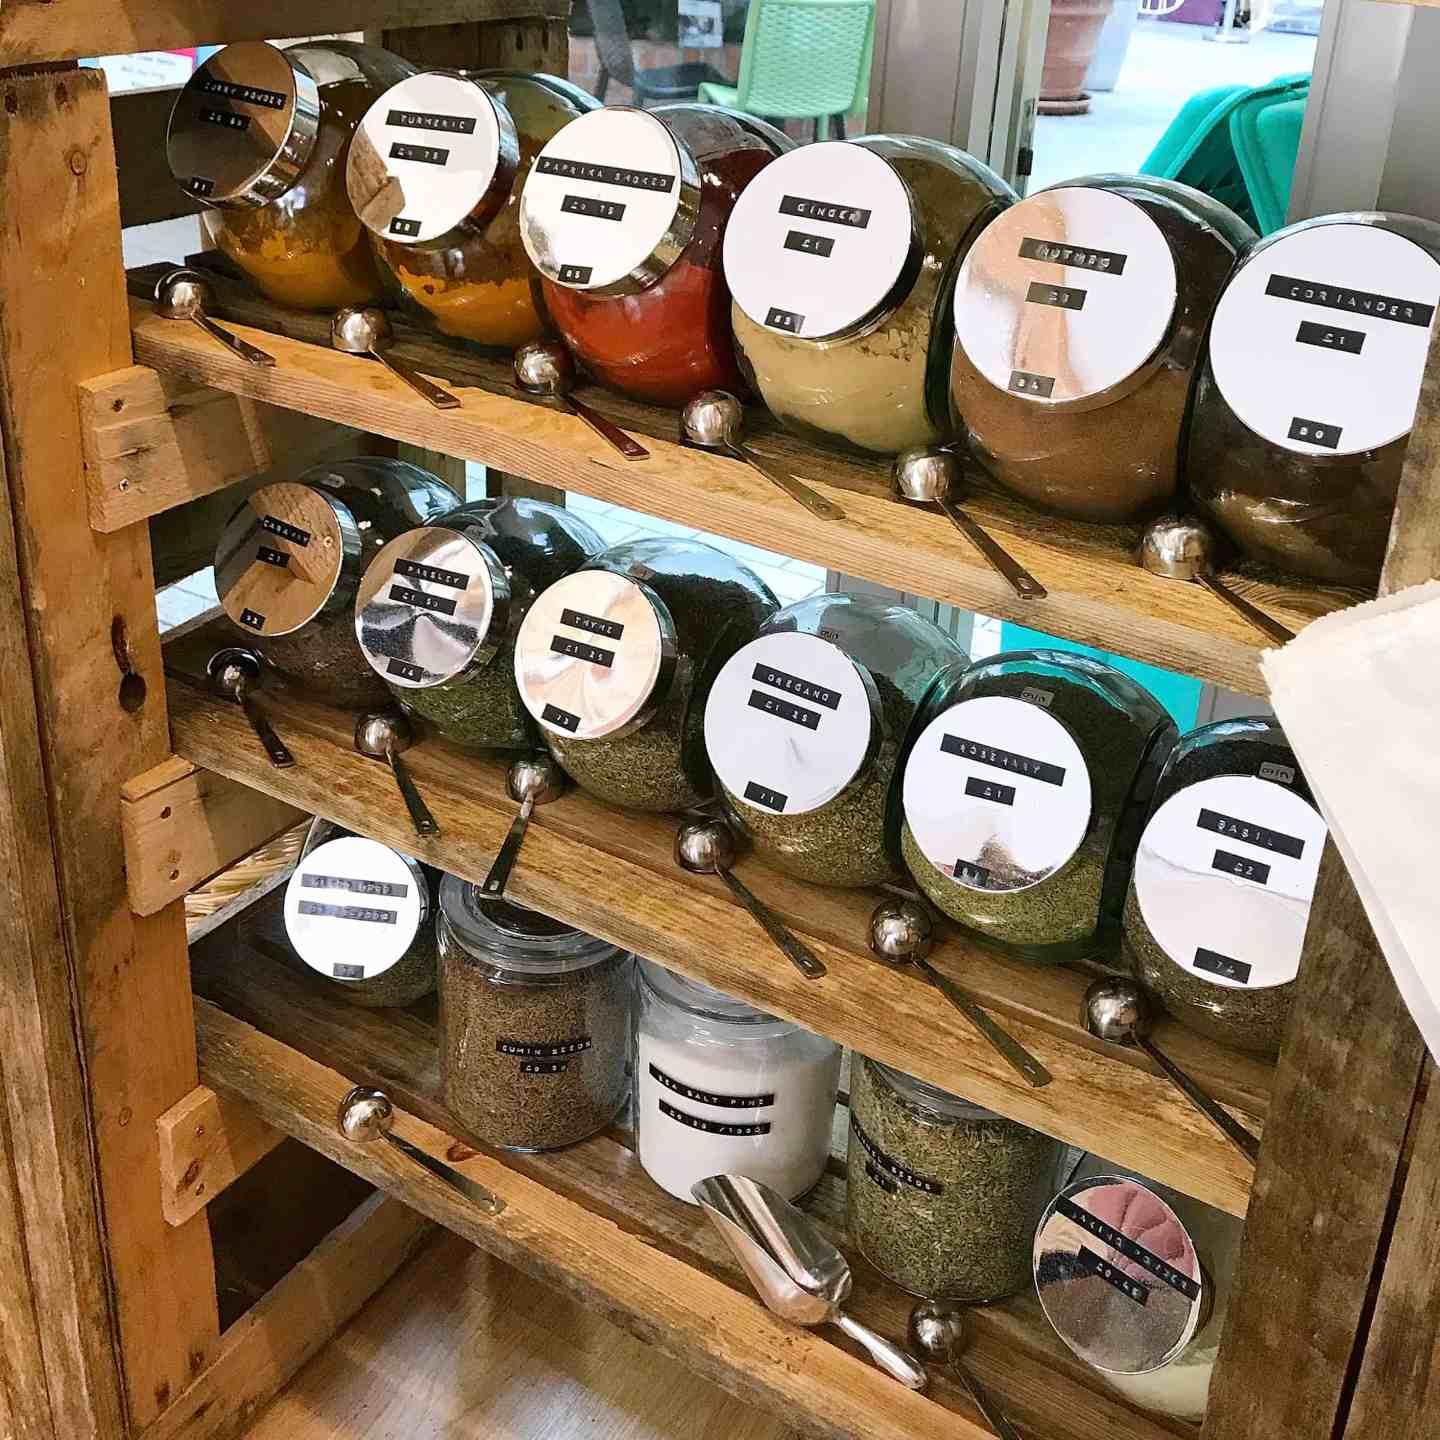 Refill your containers for easy swaps you can make to reduce waste